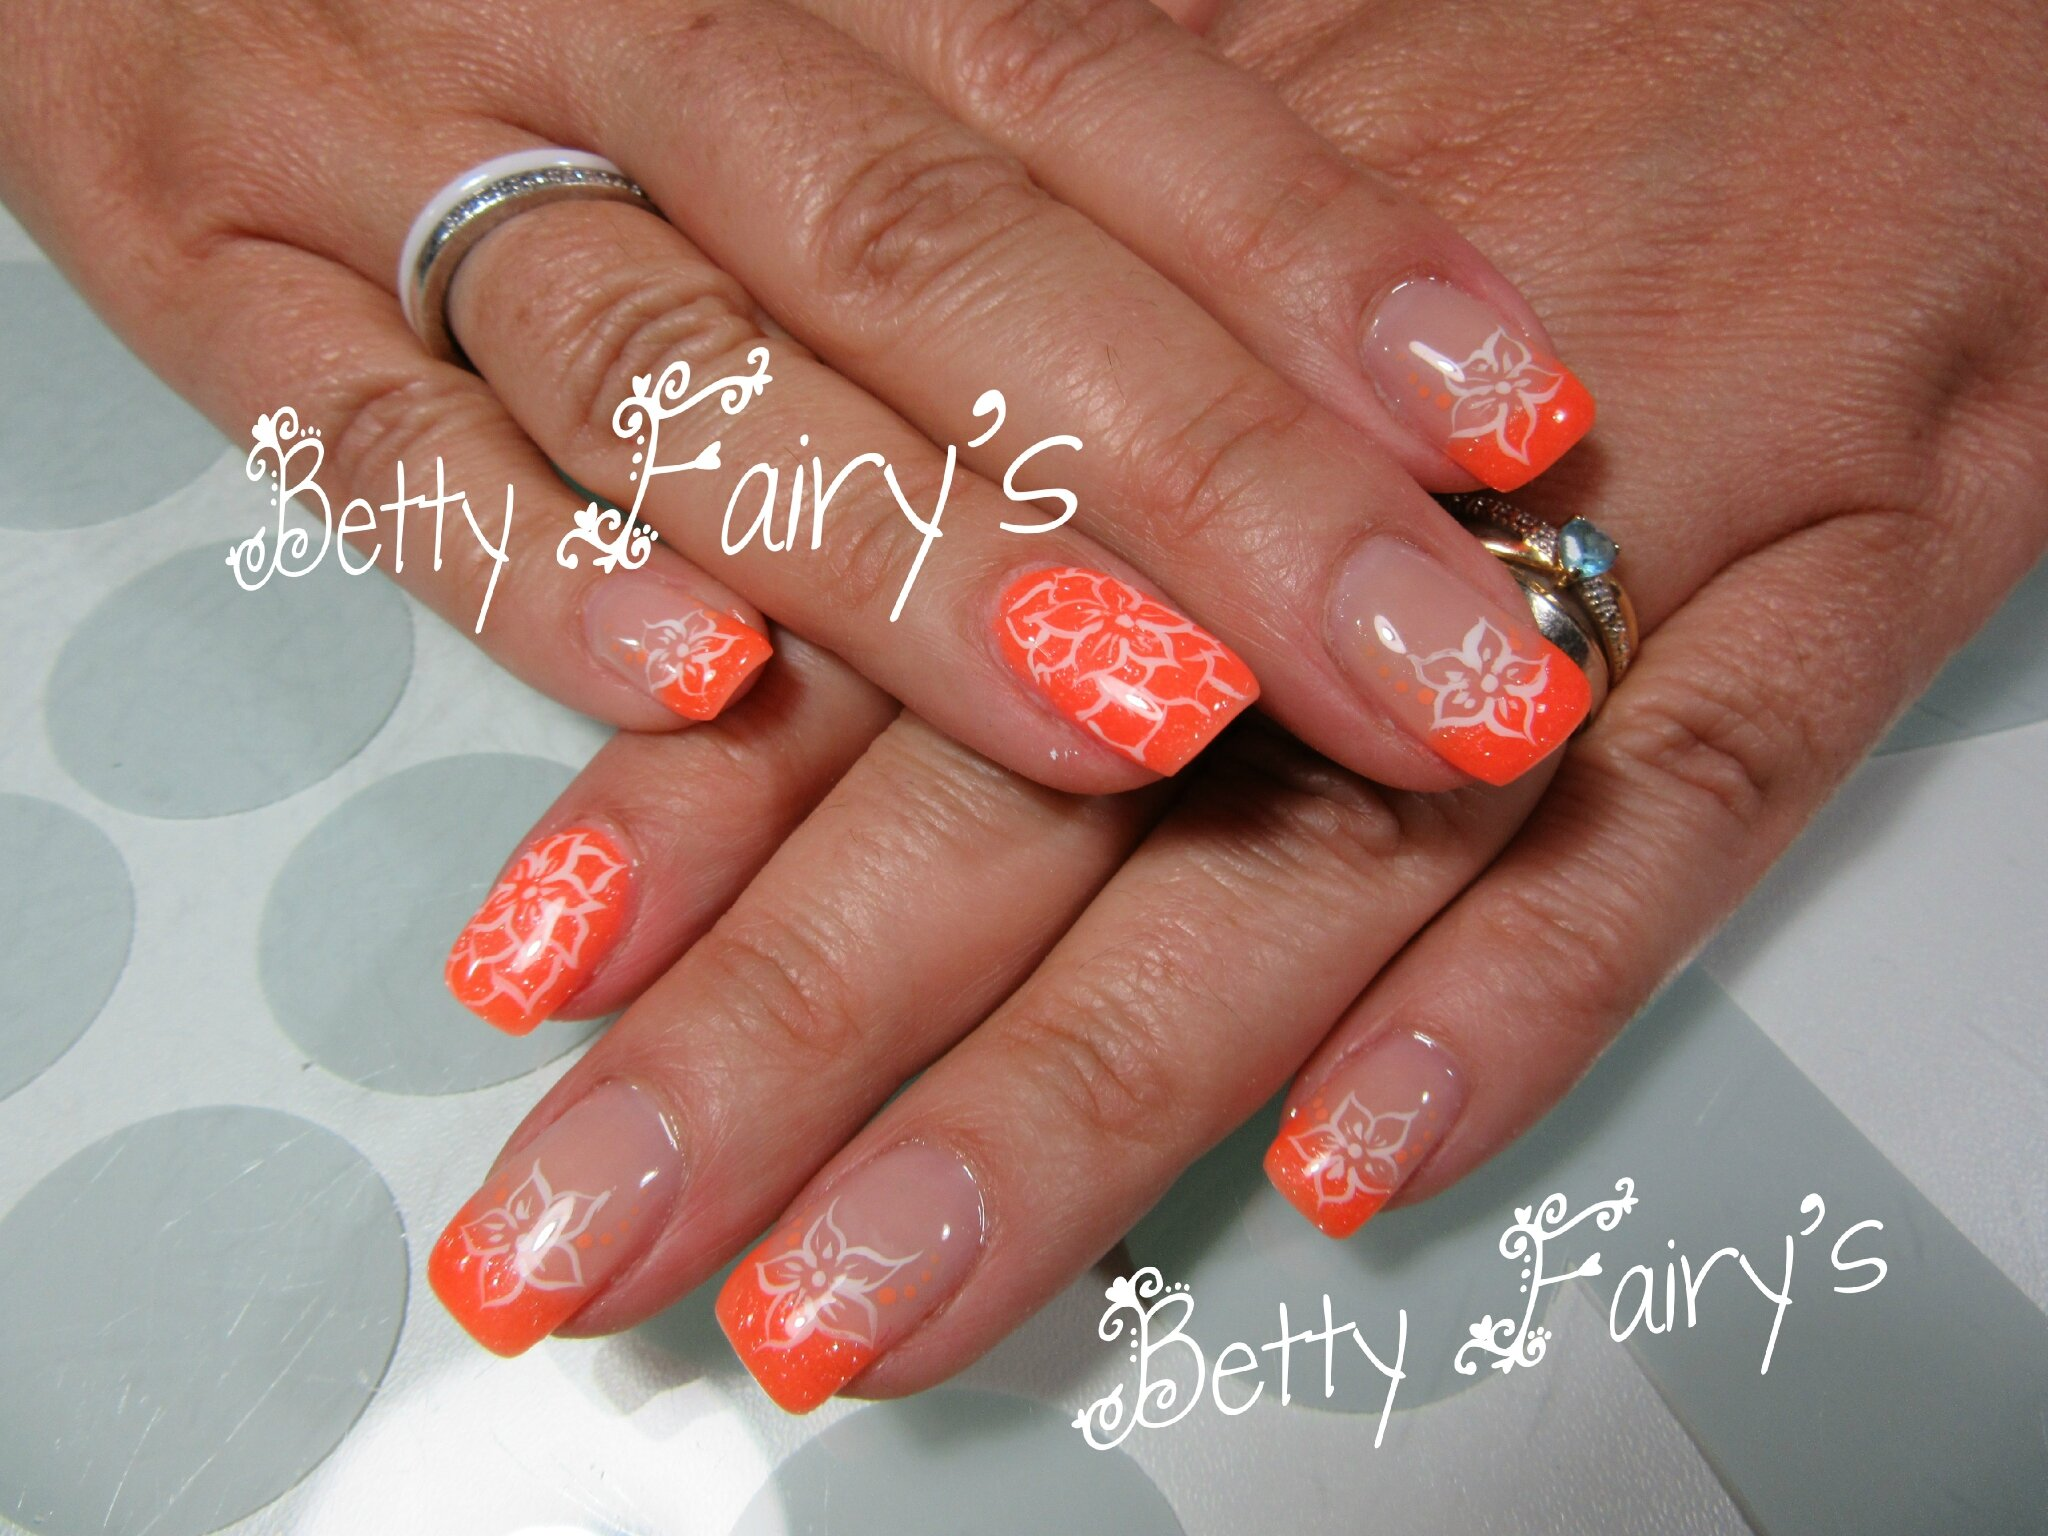 Beau Nails & beauty | Facebook